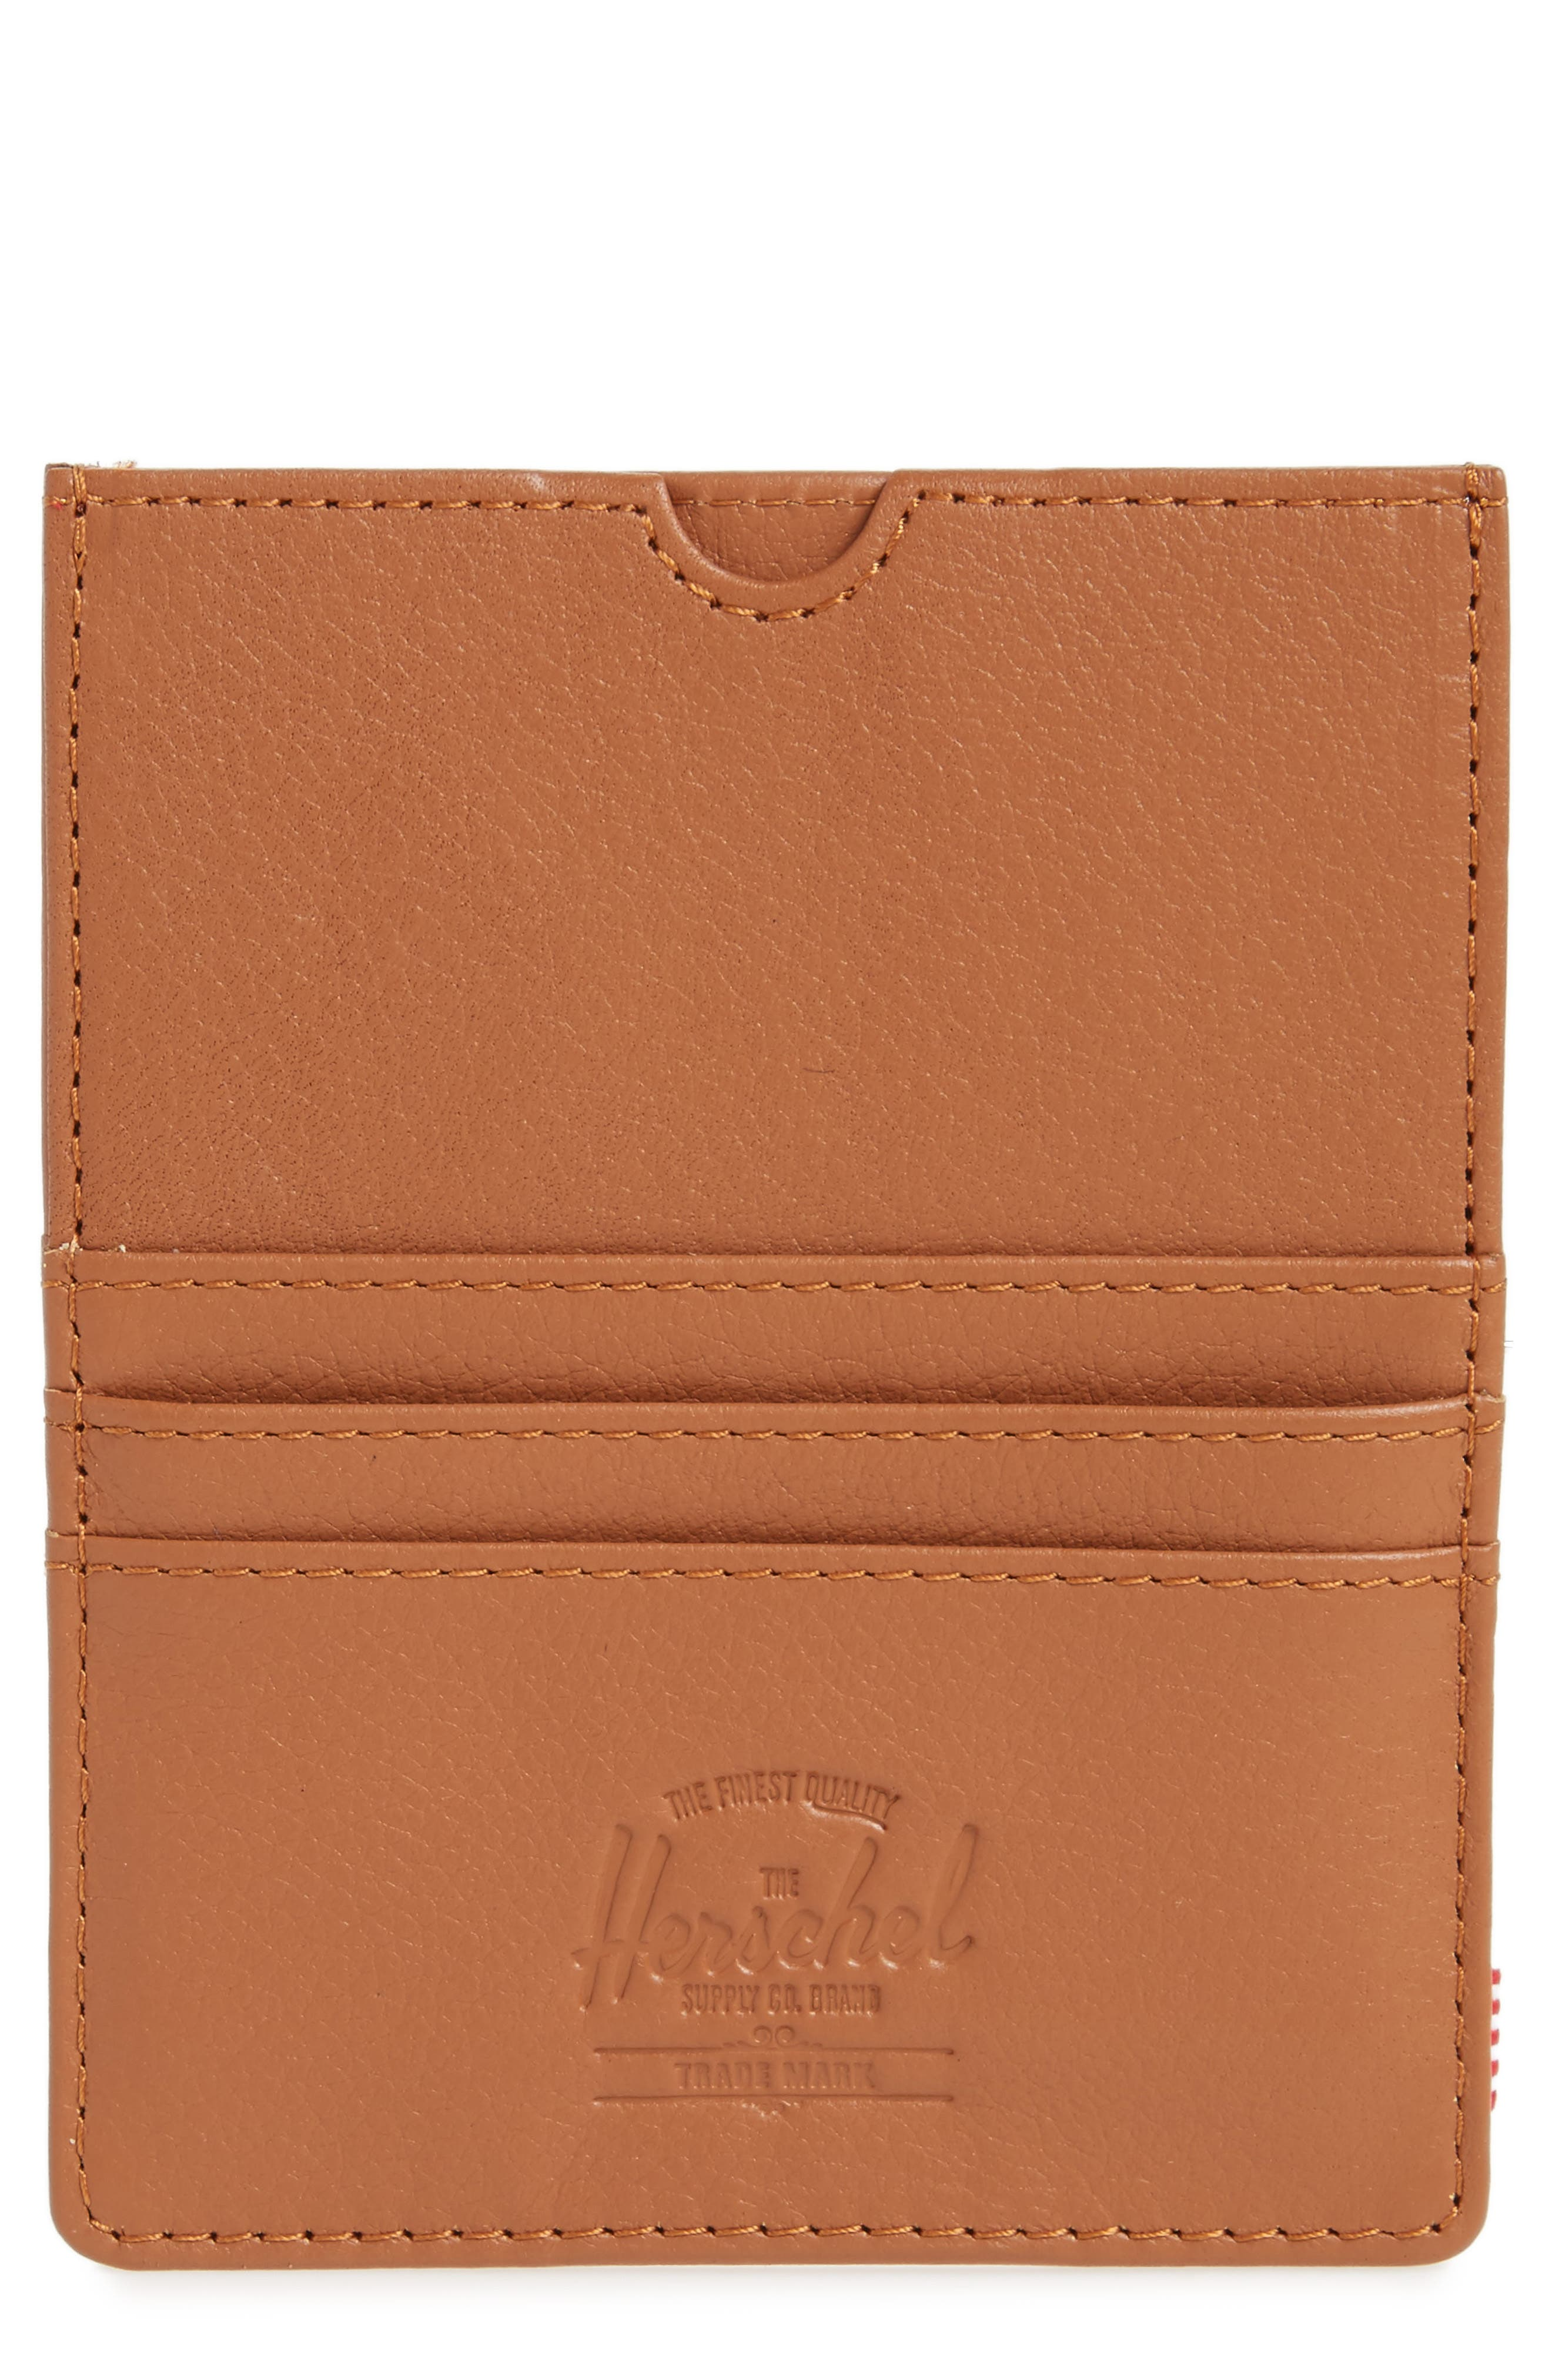 Eugene Leather Card Case,                             Main thumbnail 1, color,                             210